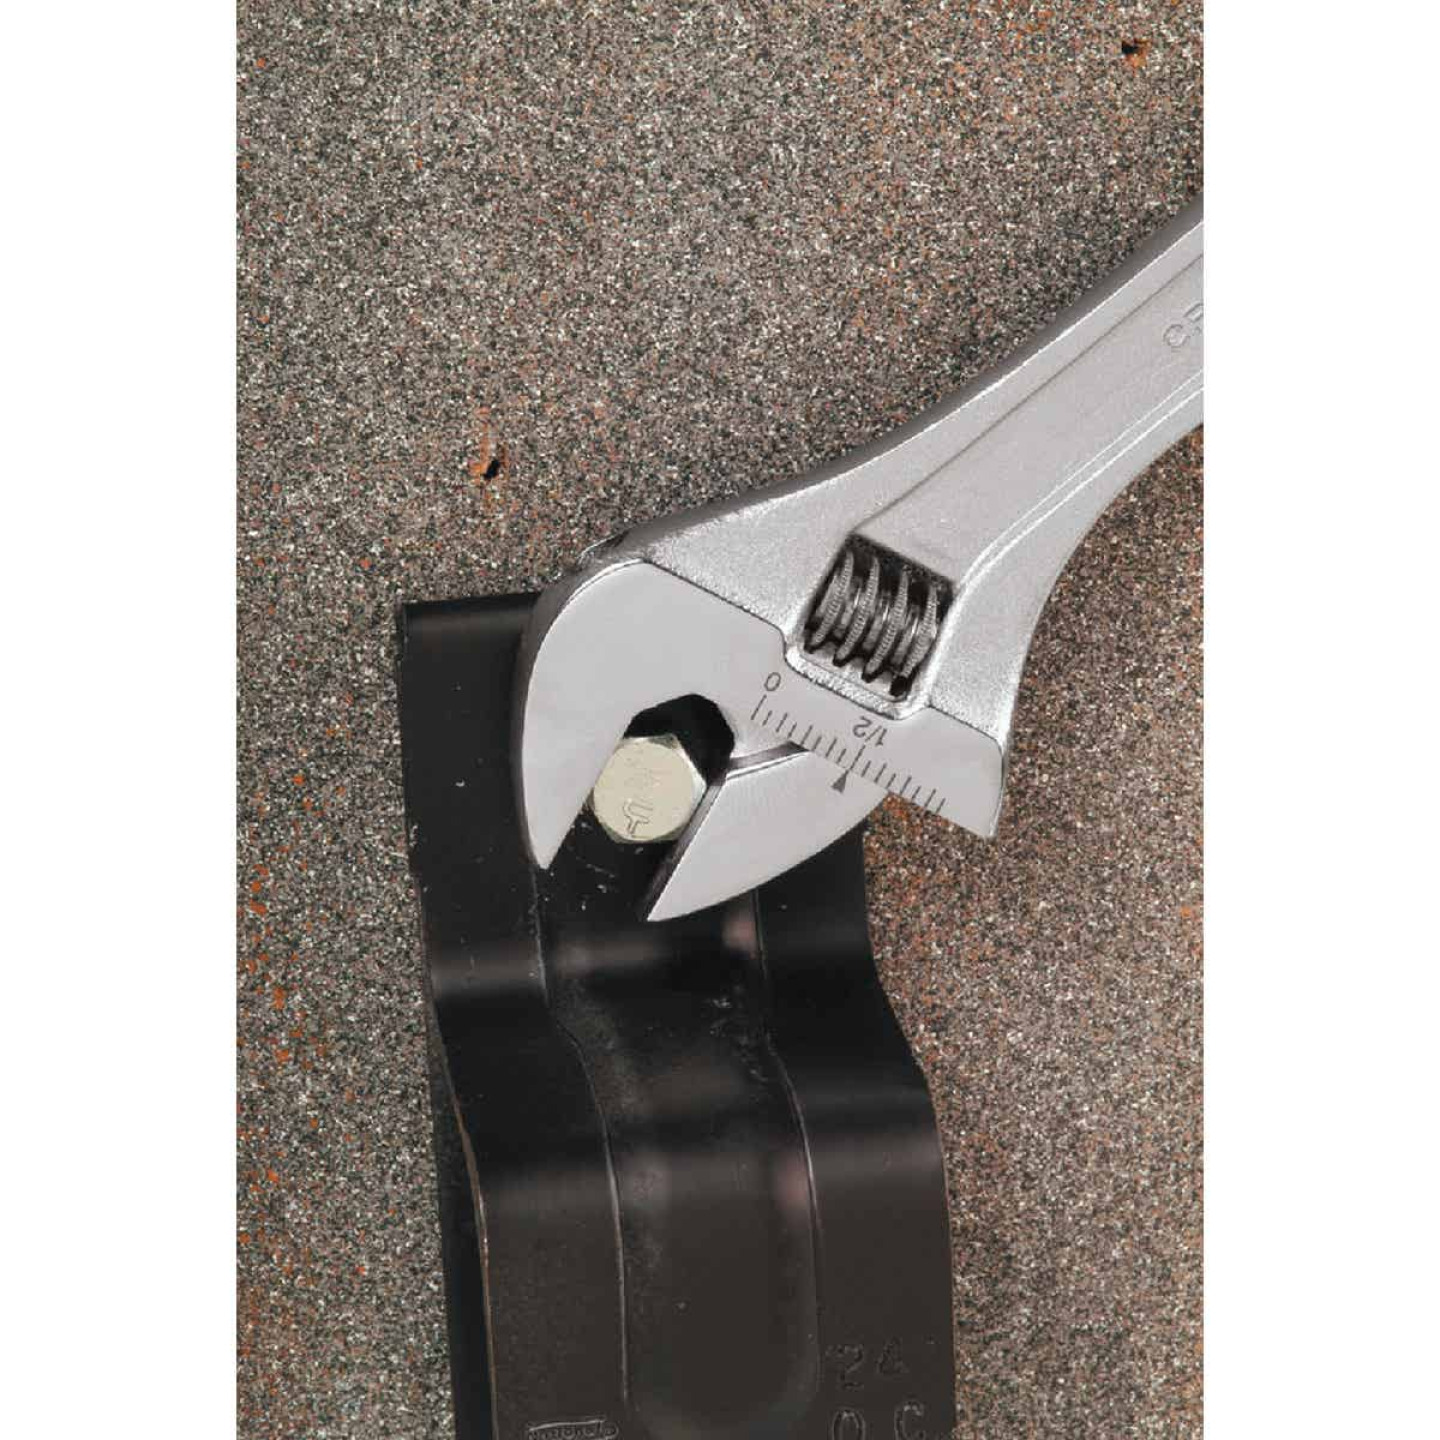 Channellock 6 In. Adjustable Wrench Image 2